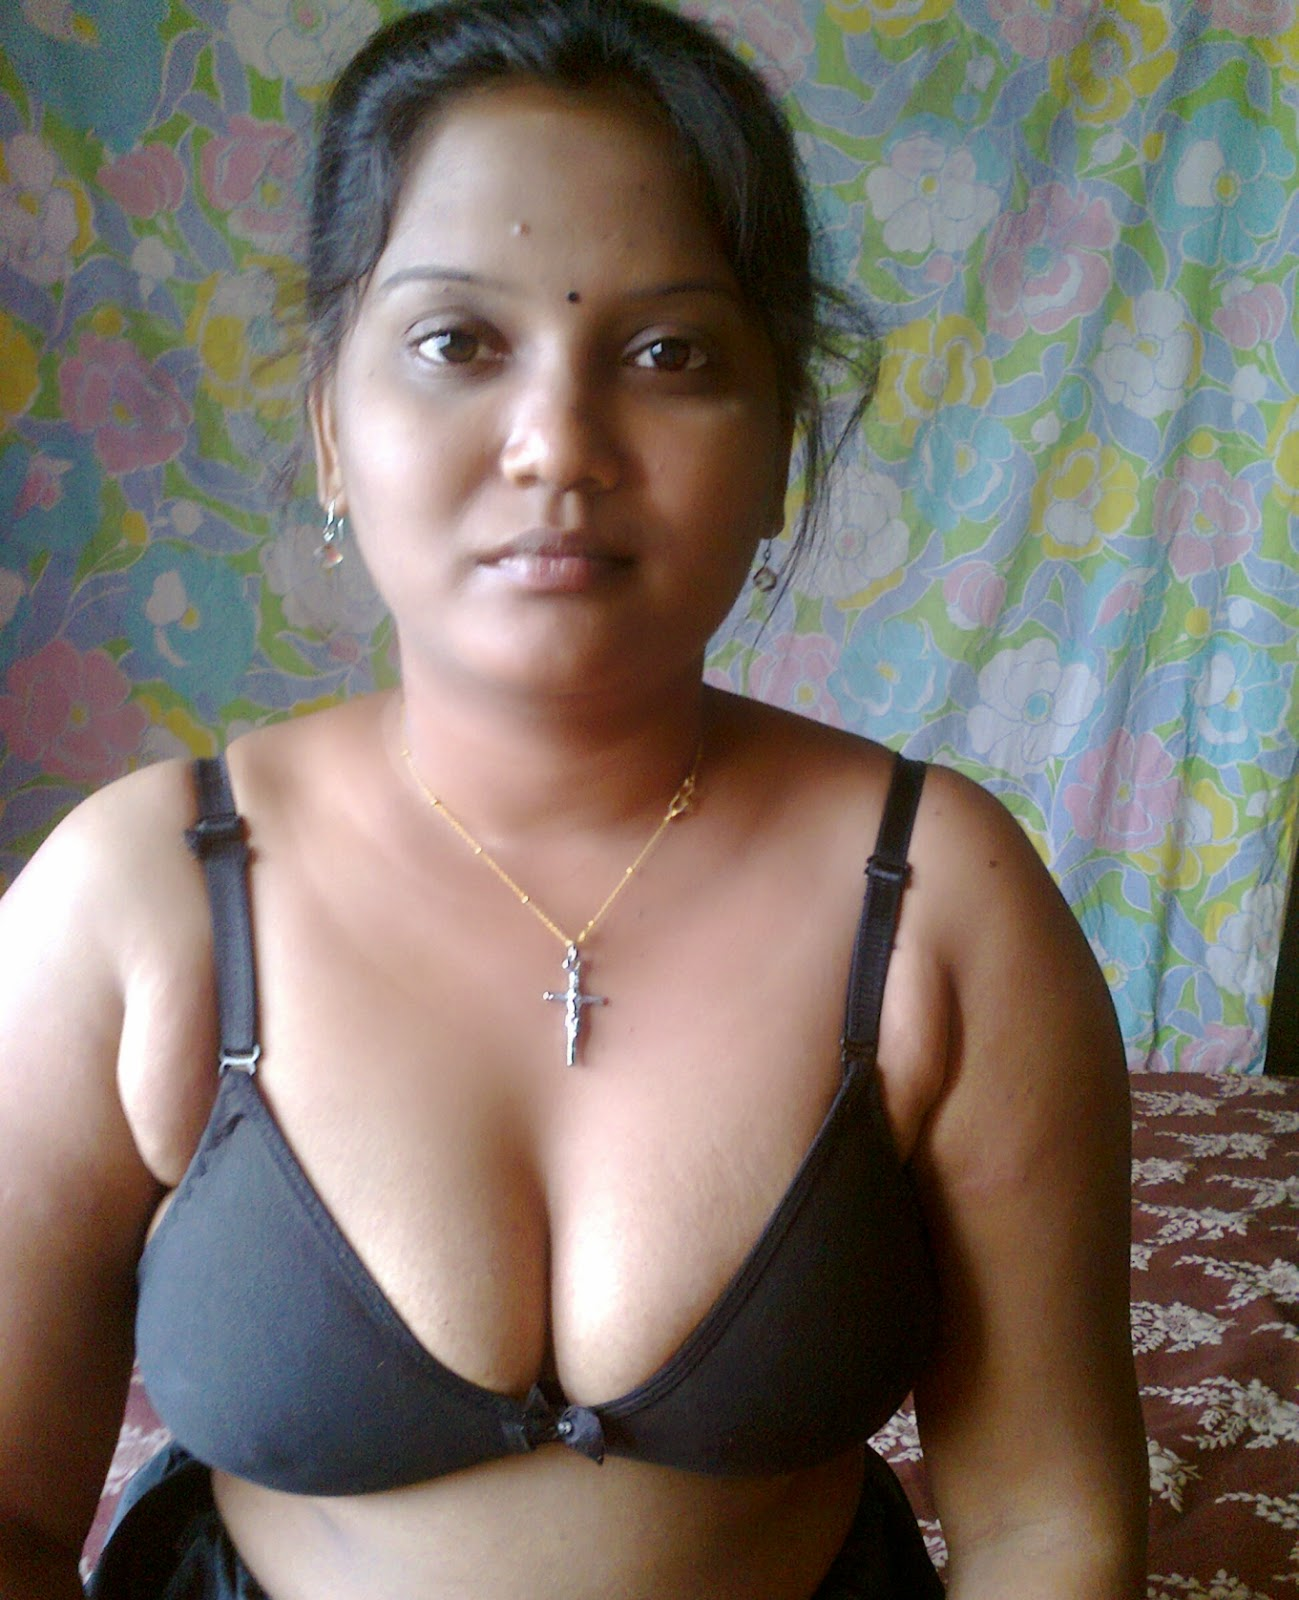 Desi Girls And Aunties Hot And Sexy Pictures: Desi In Bra